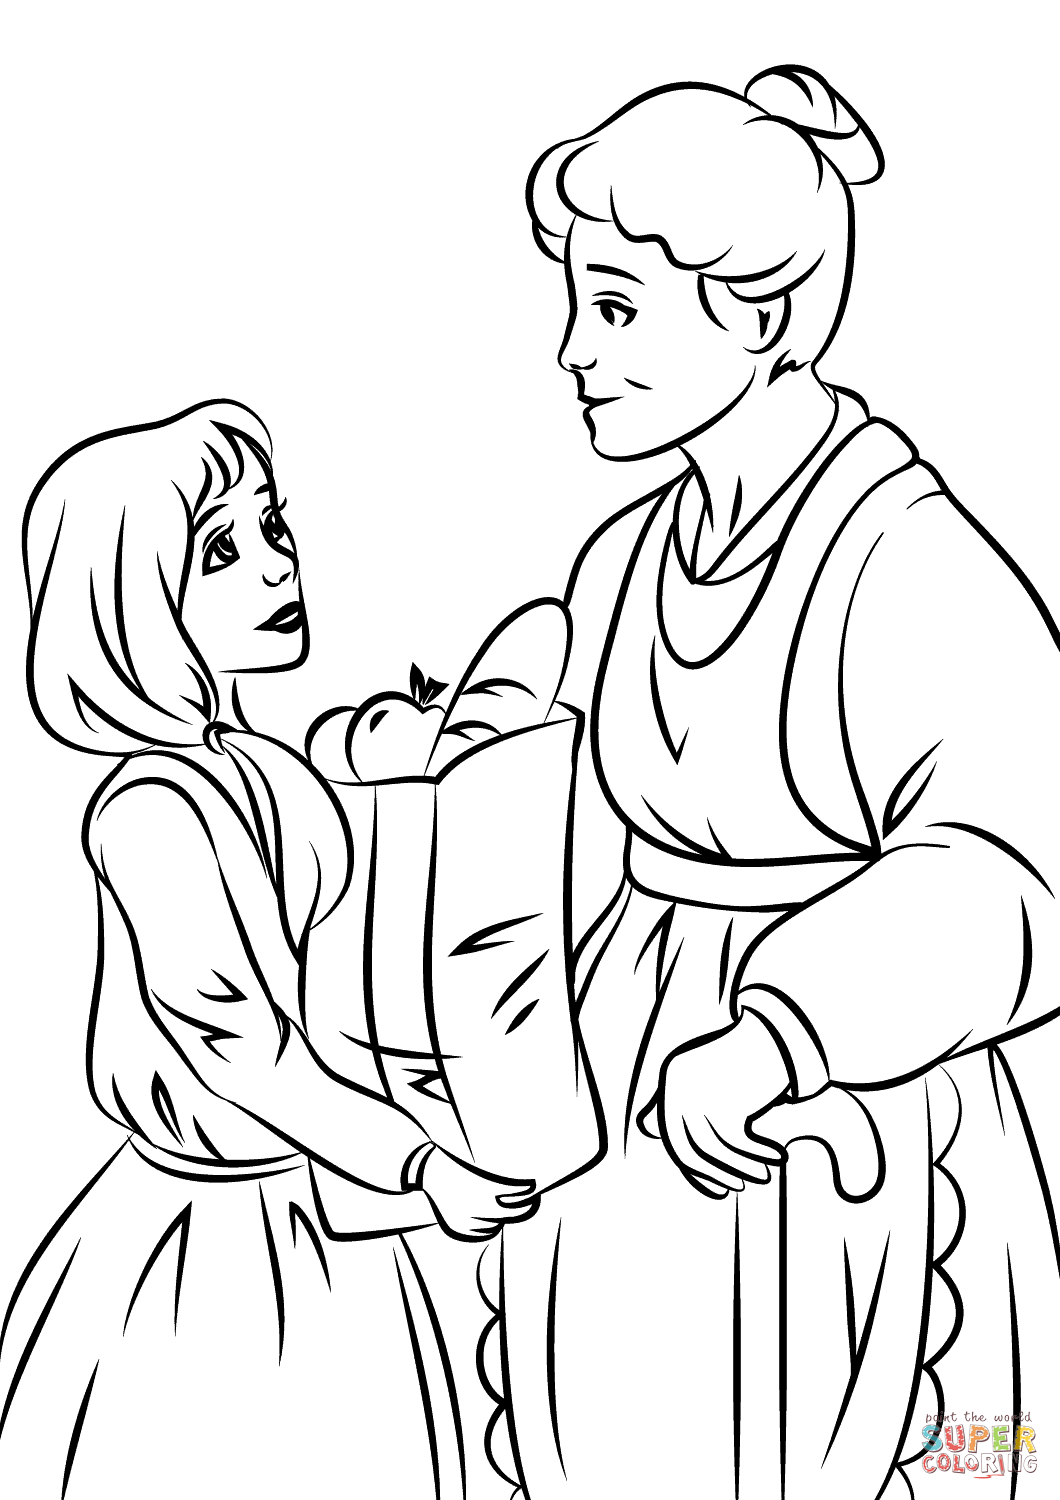 1060x1500 Helping Others Coloring Page Free Printable Coloring Pages